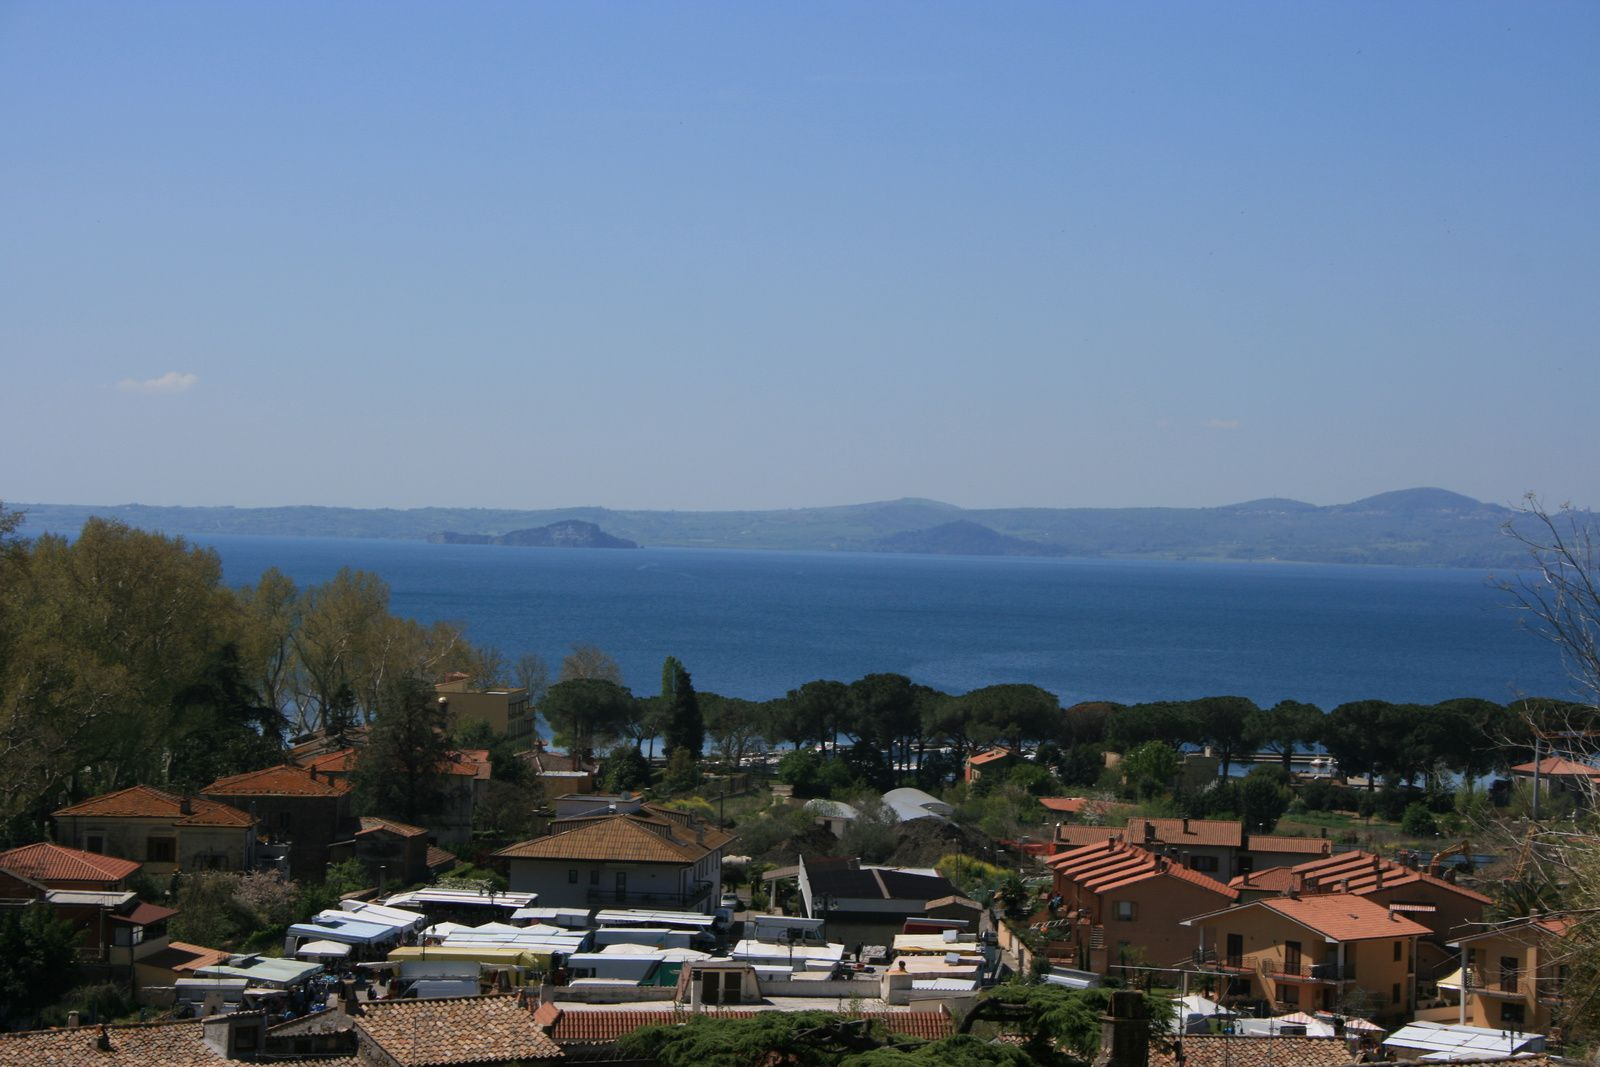 Lake Bolsena, and Bisentina and Martana islands, two cones tuffs.- picture Kweedado2